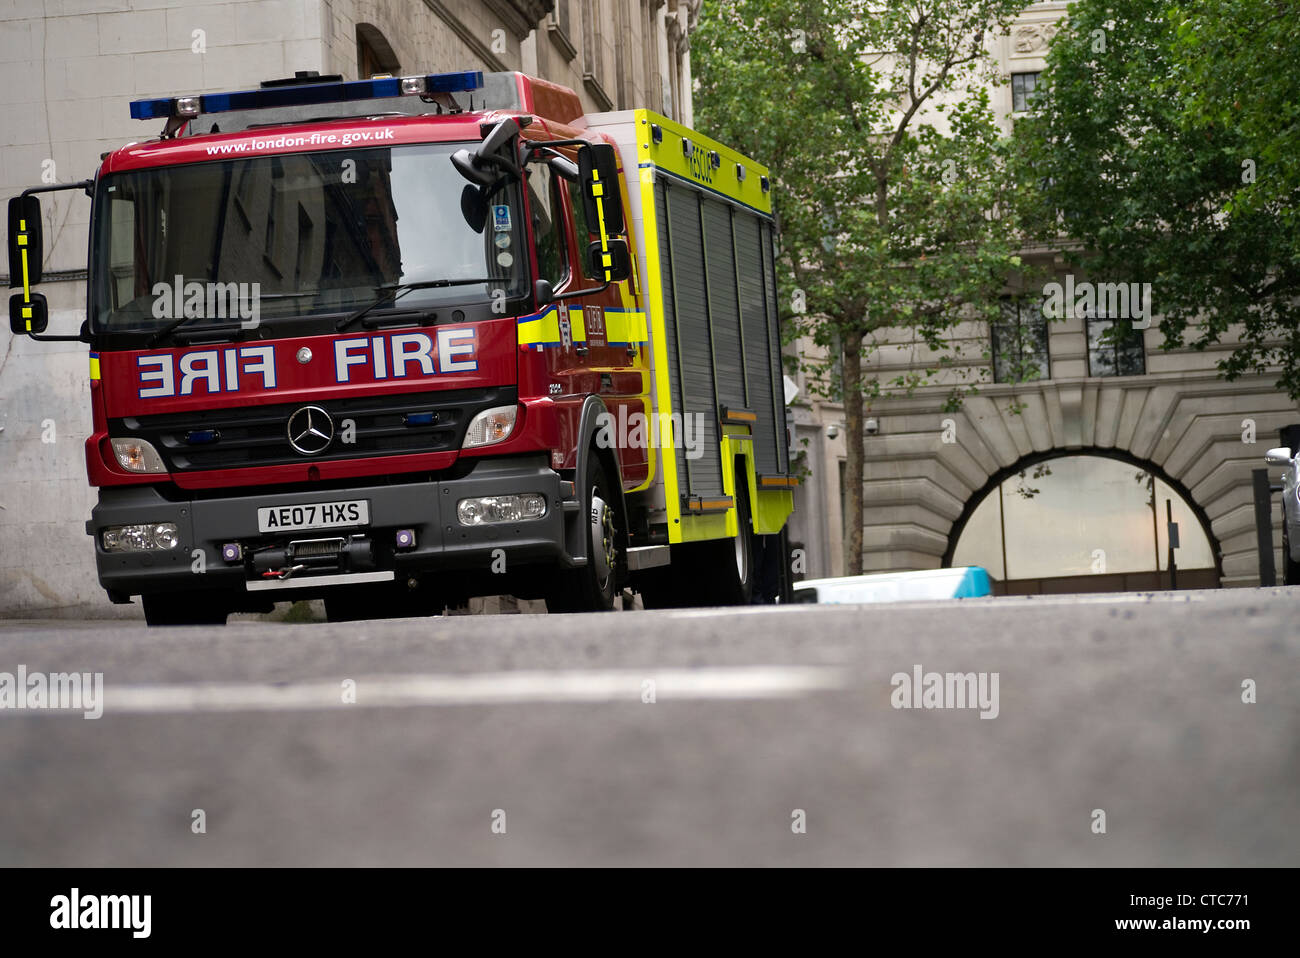 London Fire Brigade Fire engine in central London - Stock Image